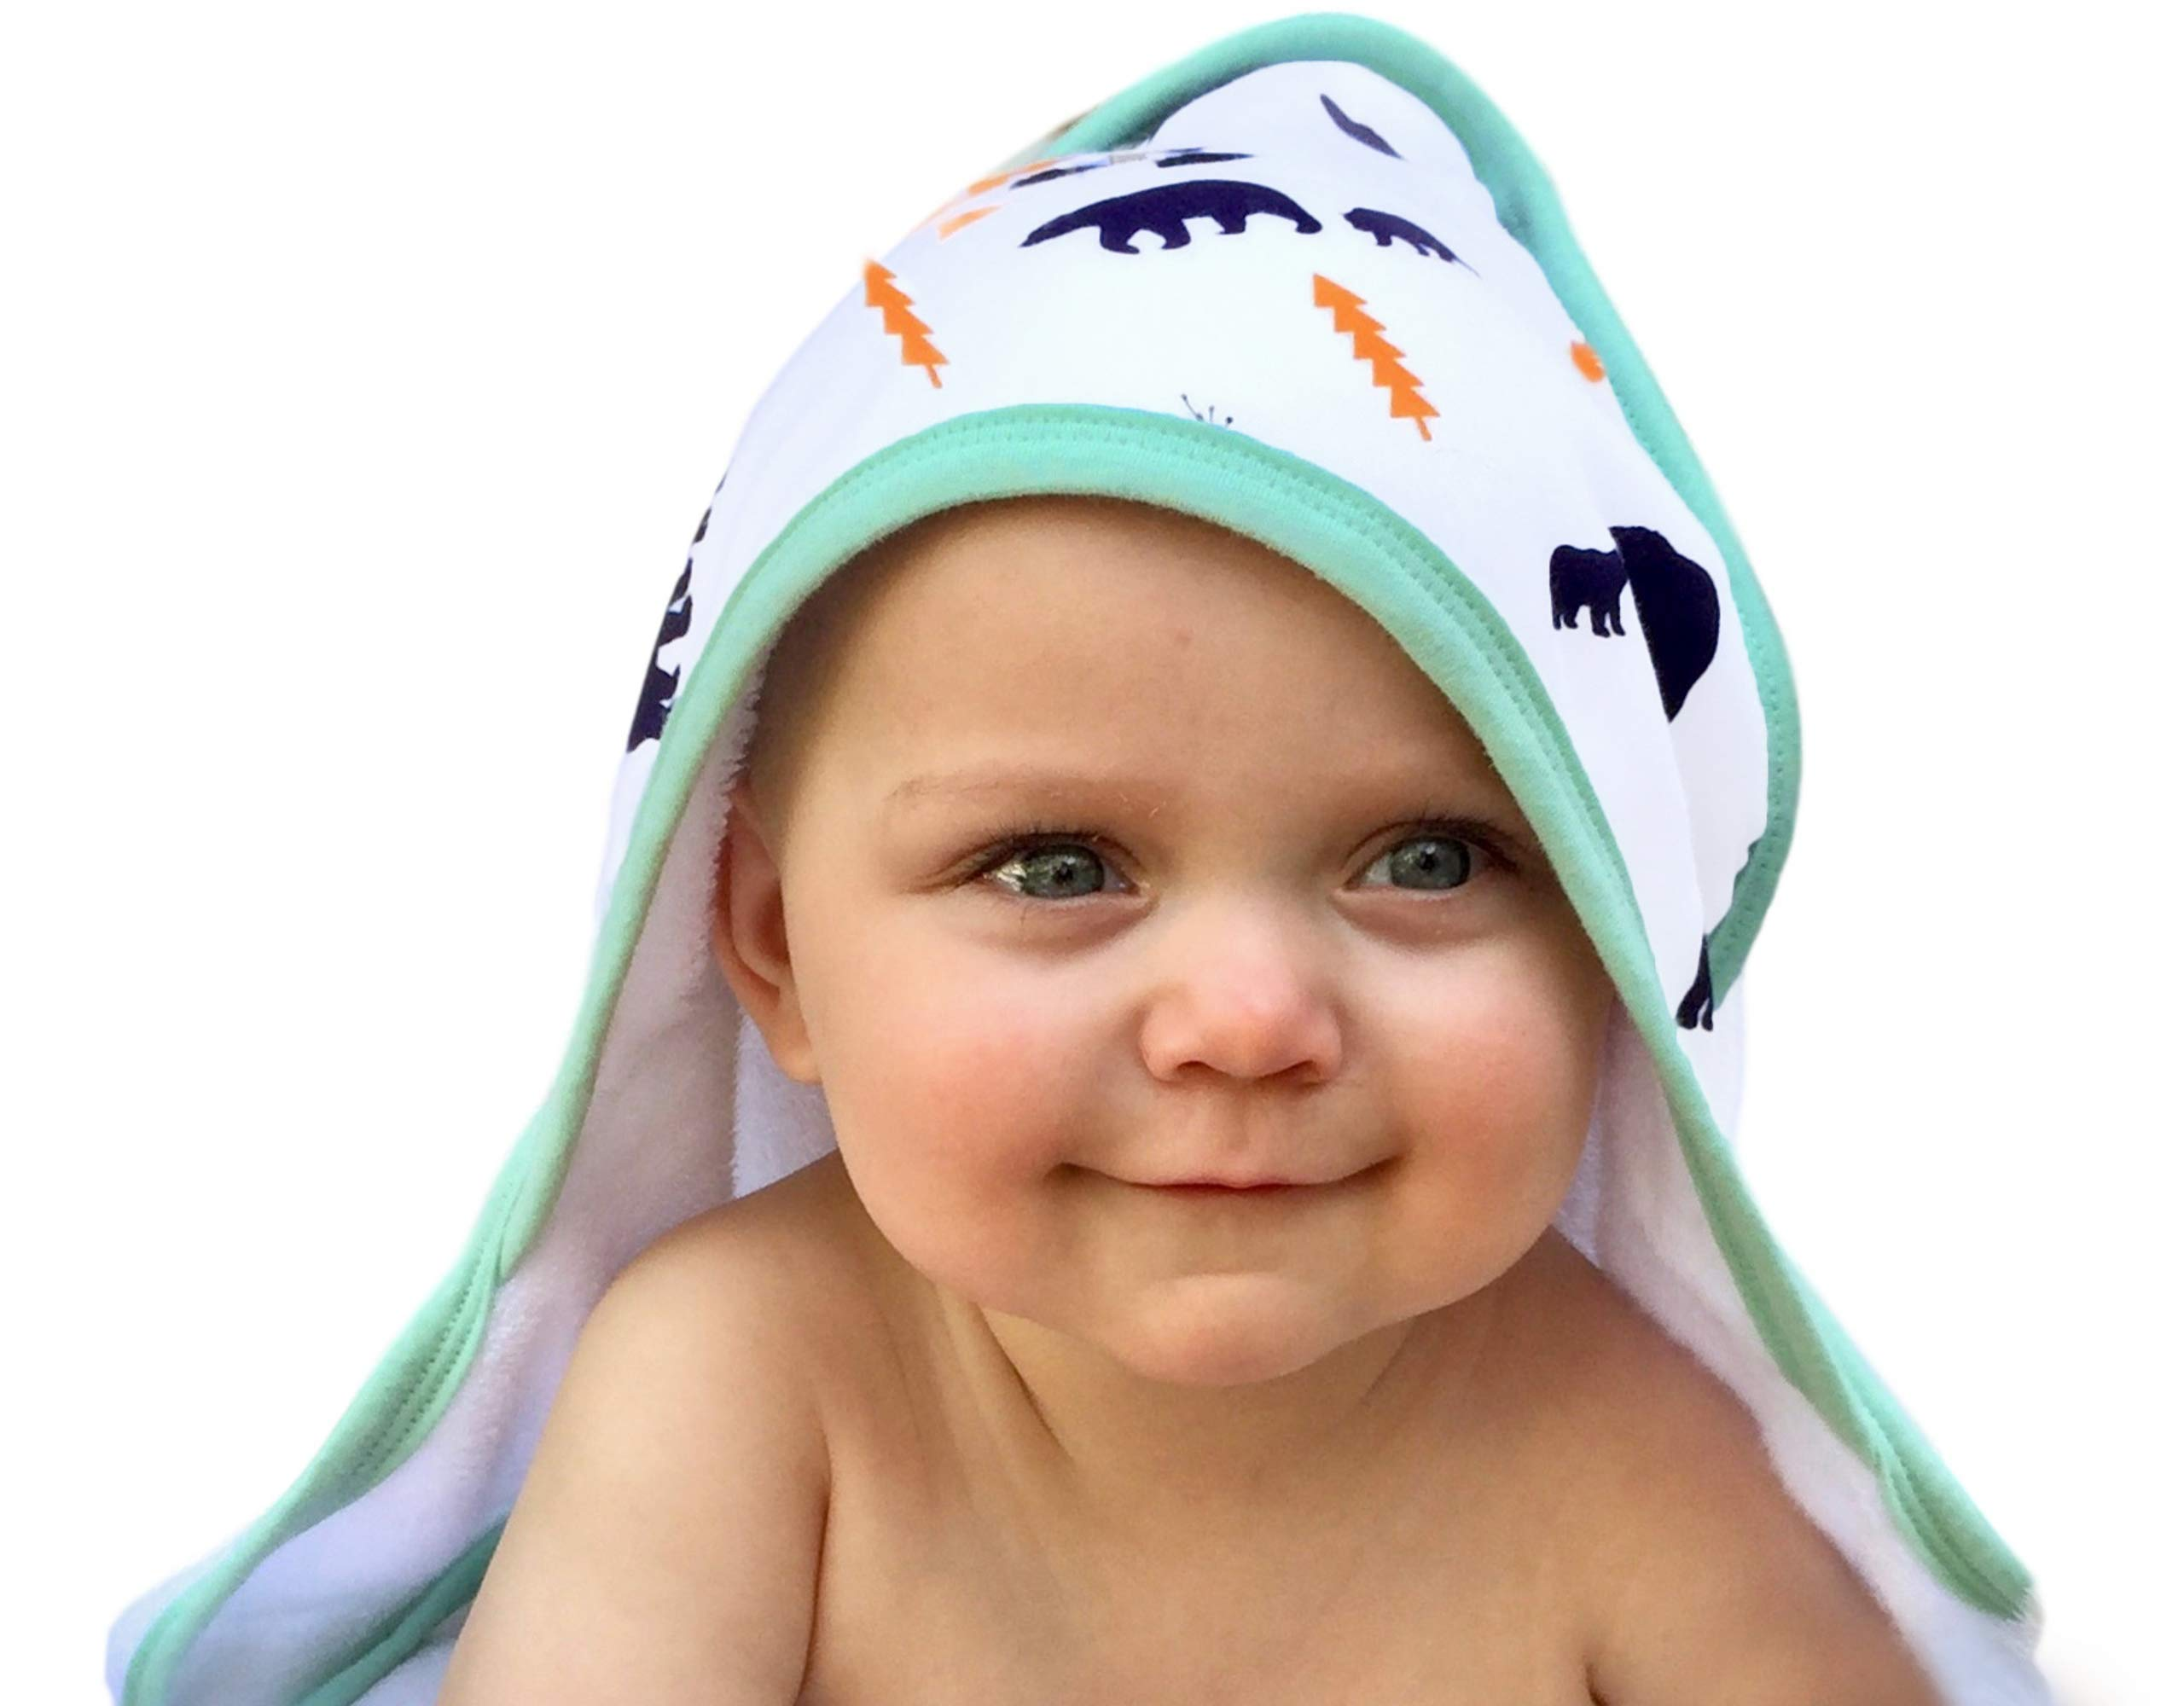 Baby Hooded Towel for Boys & Girls |Organic & Luxuriously Soft Bamboo |Plush & Highly Absorbent (500GSM) Thick Baby Bath Towel with Hood for Newborns Babies, Infants & Toddlers (Age 0 to 3) by Land of the Wee